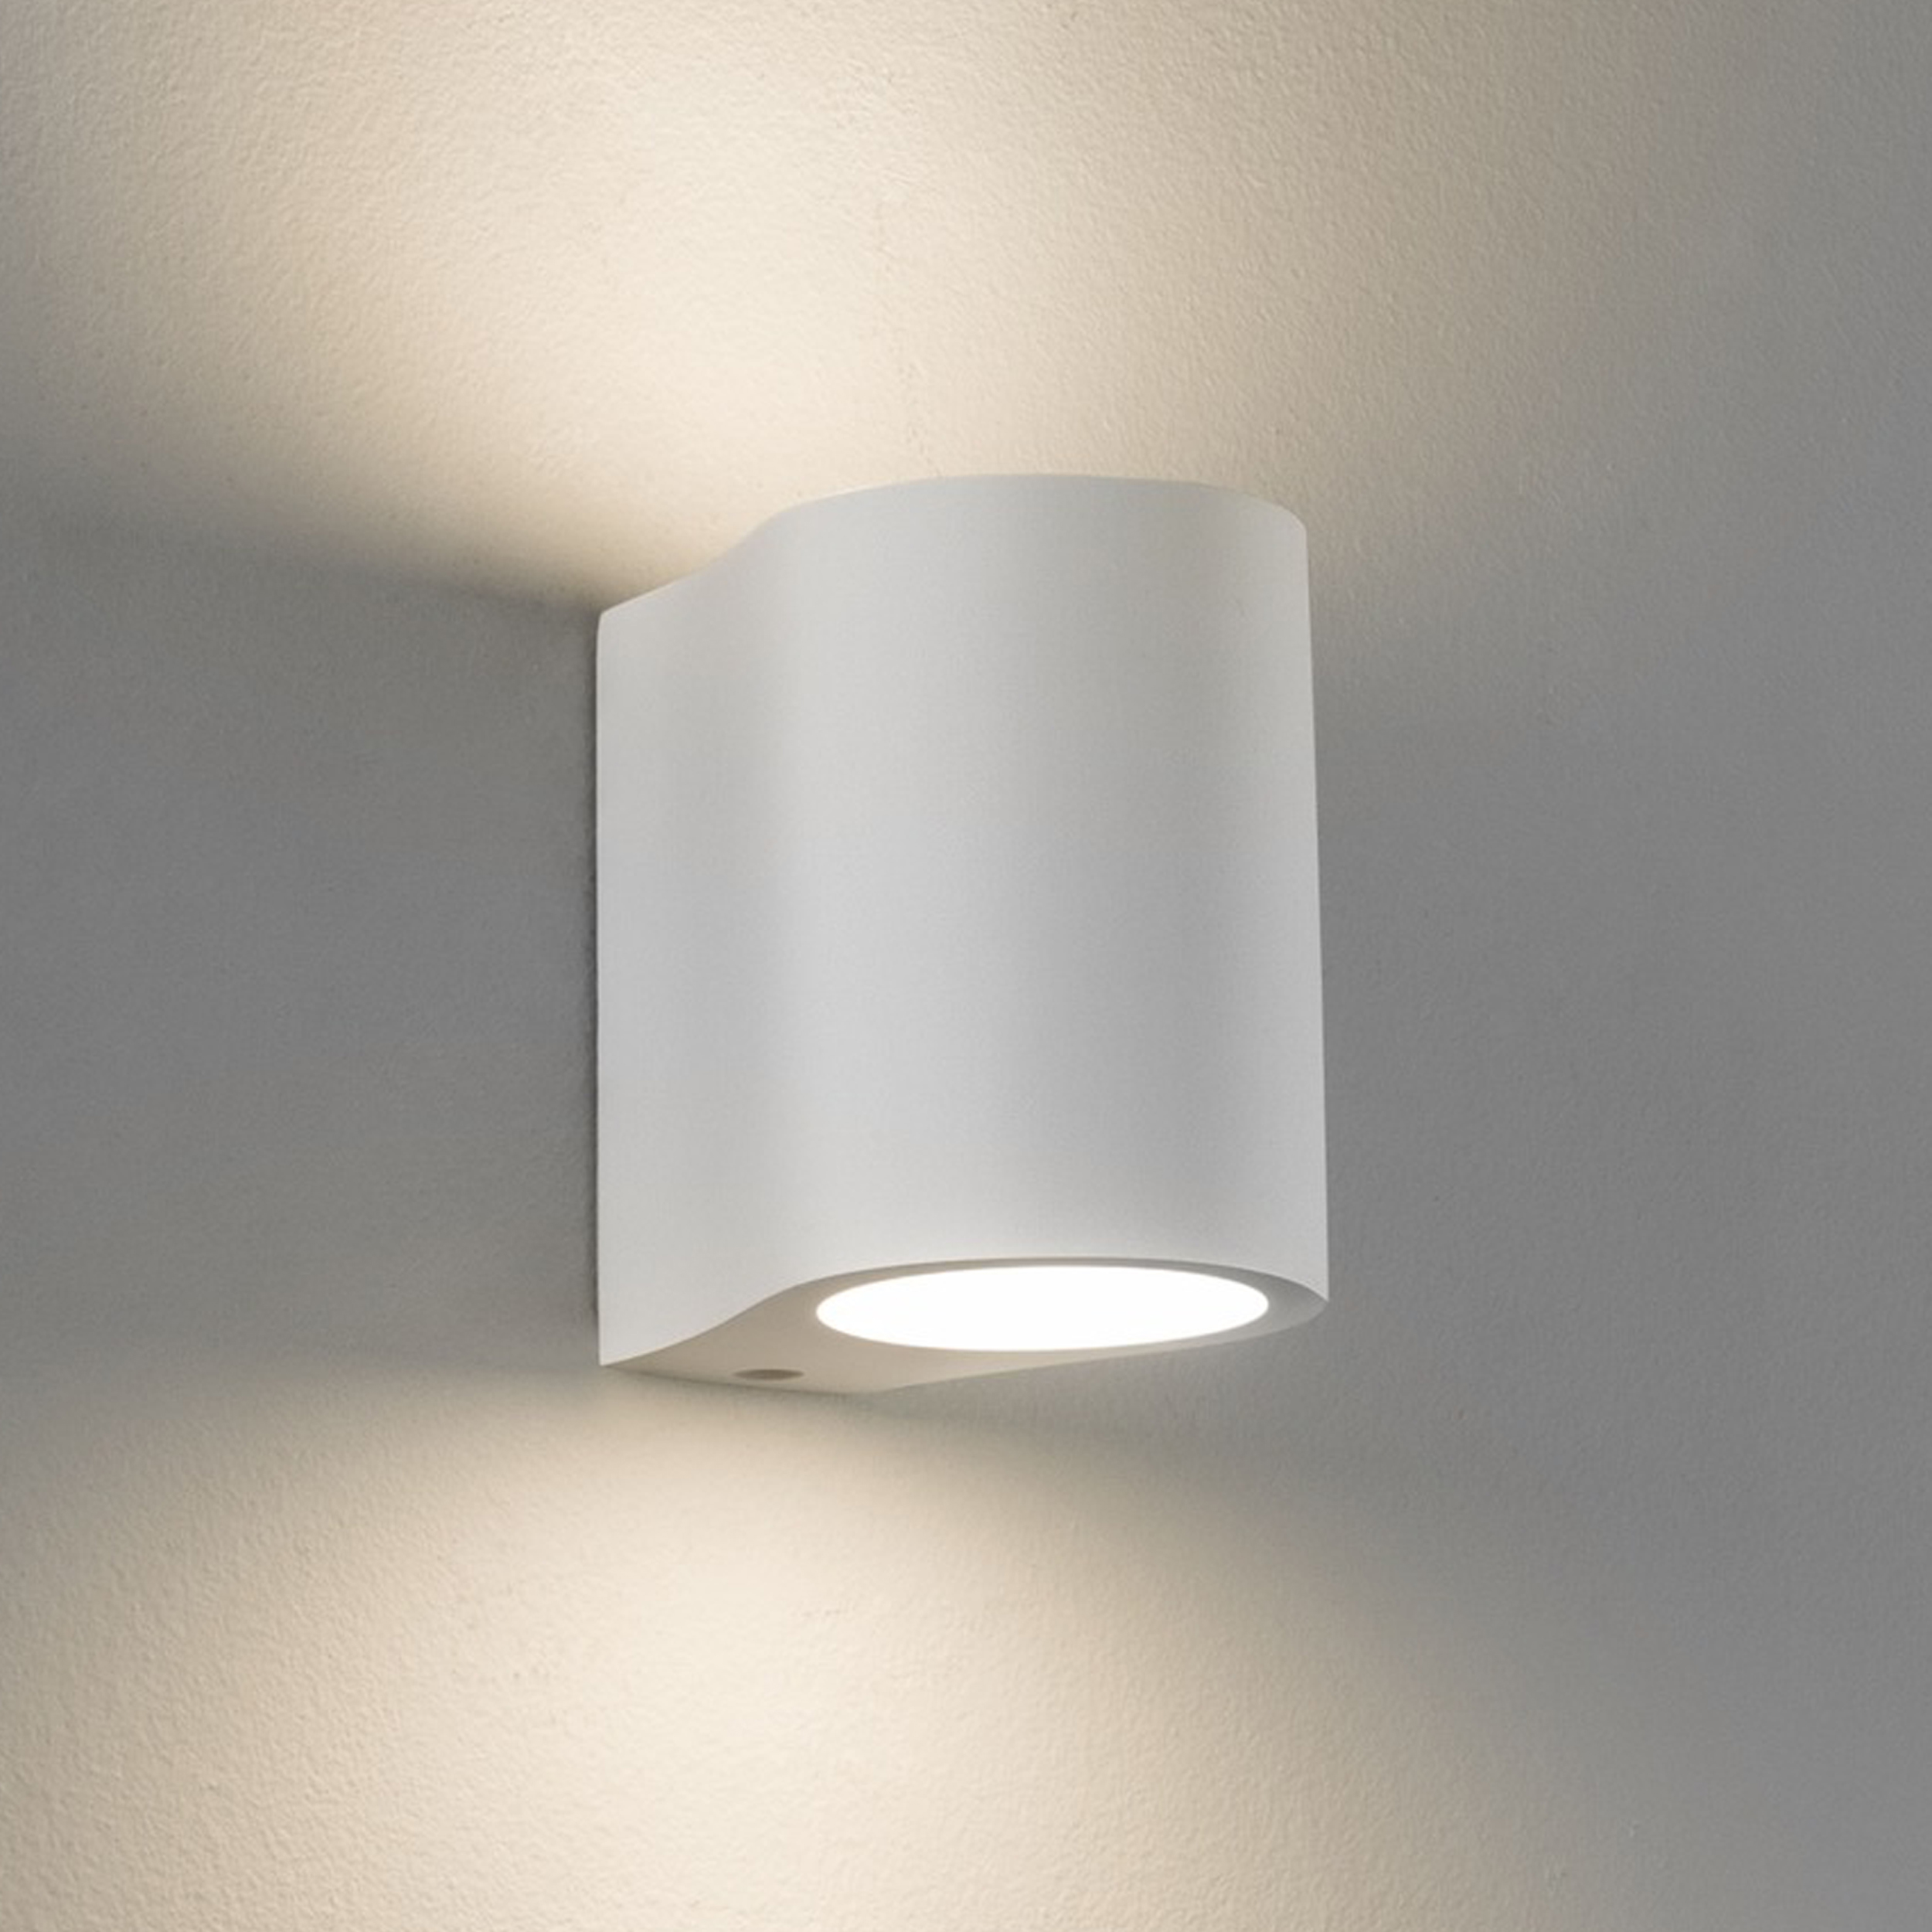 Astro Pero Wall Light Plaster